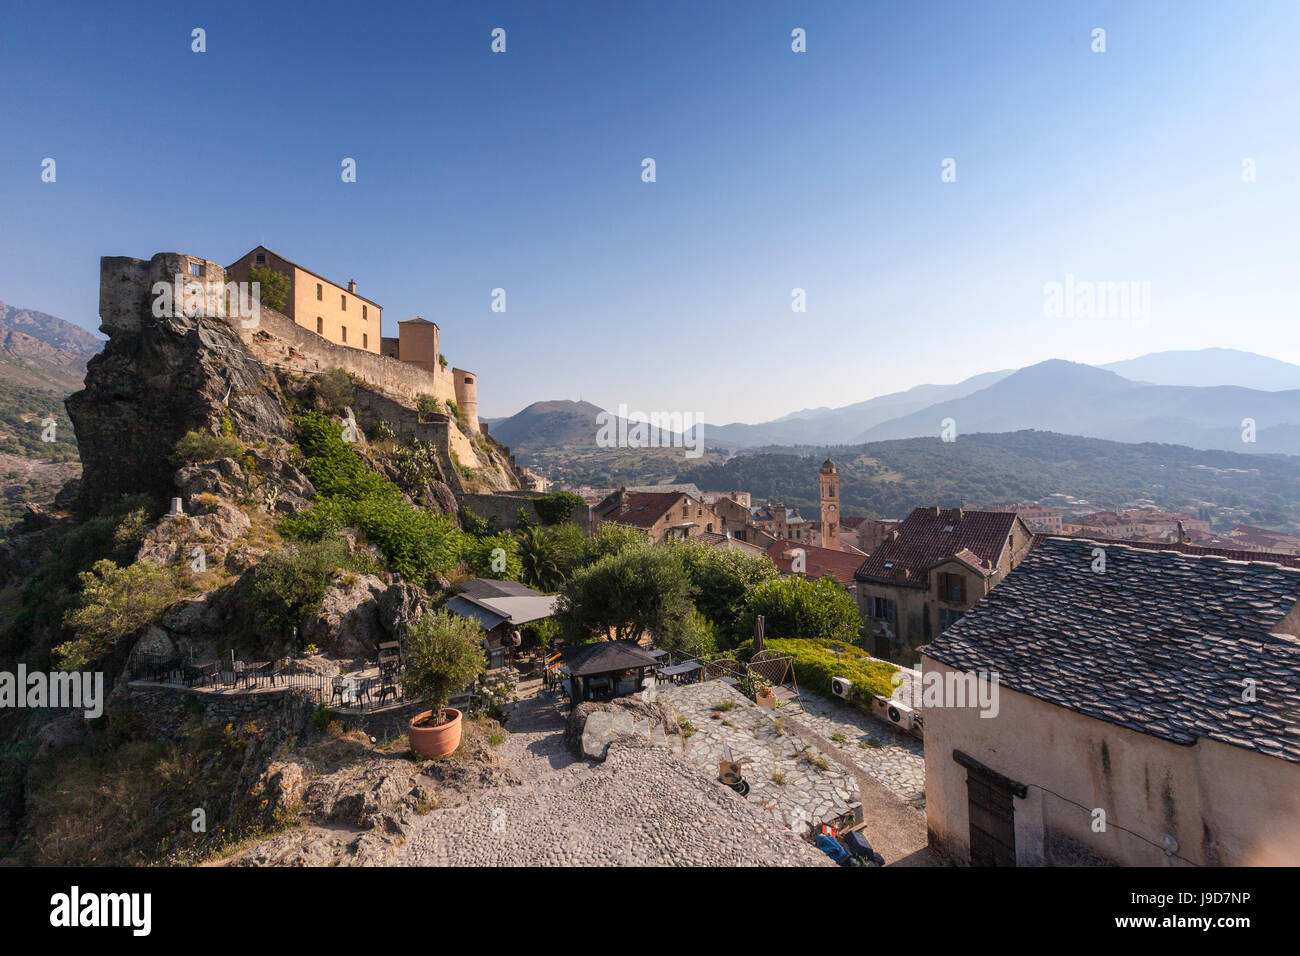 View of the old town of citadel of Corte perched on the hill surrounded by mountains, Haute-Corse, Corsica, France, - Stock Image